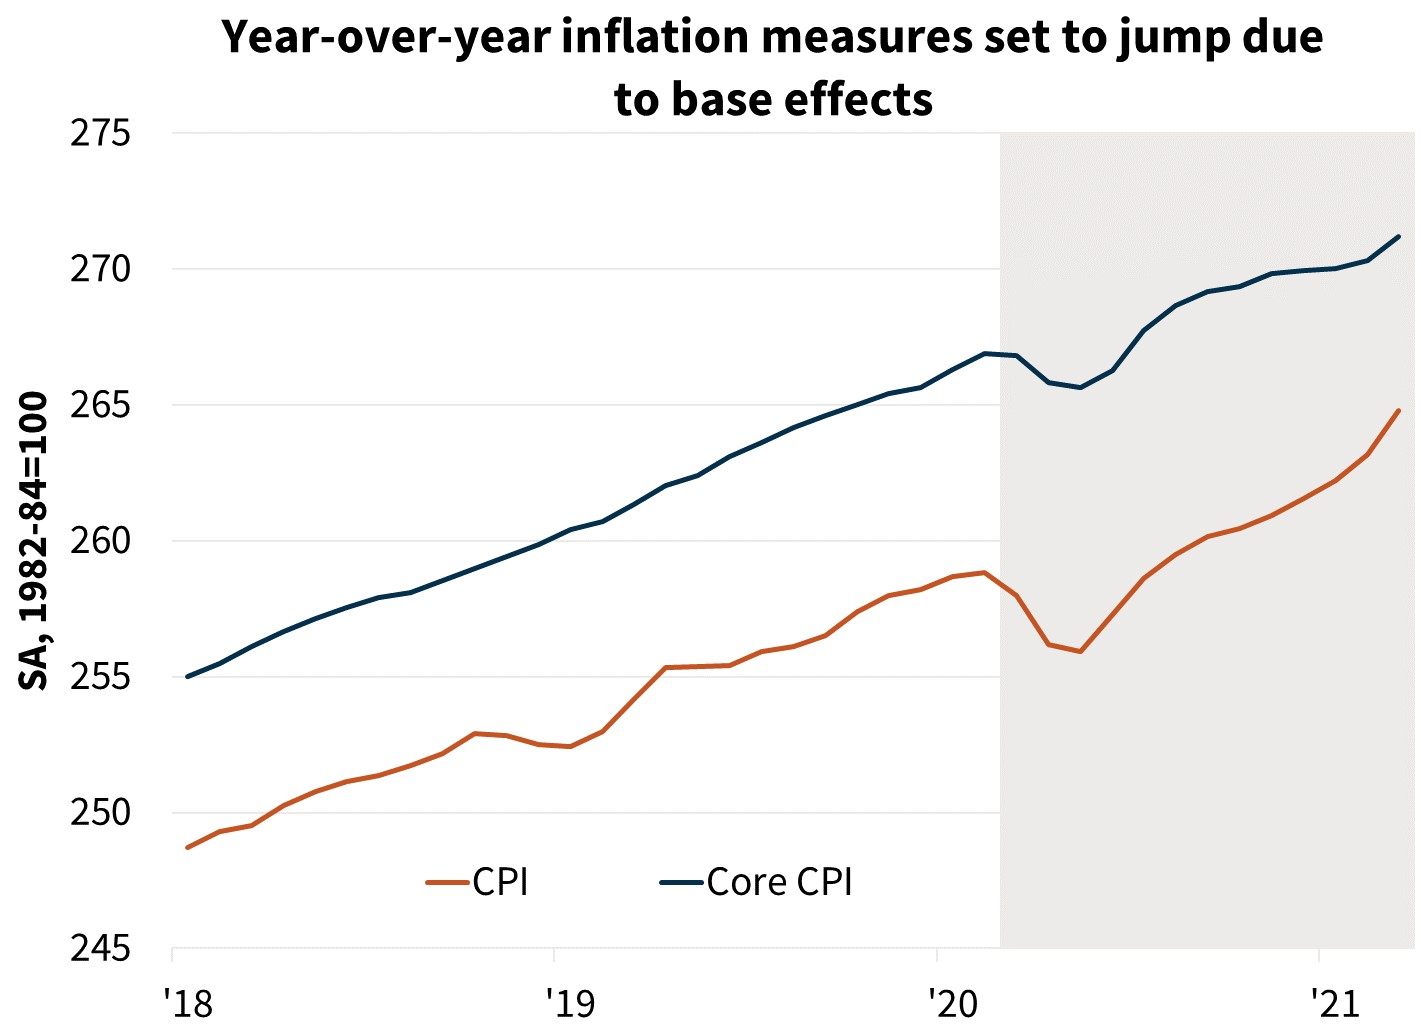 Year-over-year inflation measures set to jump due to base effects